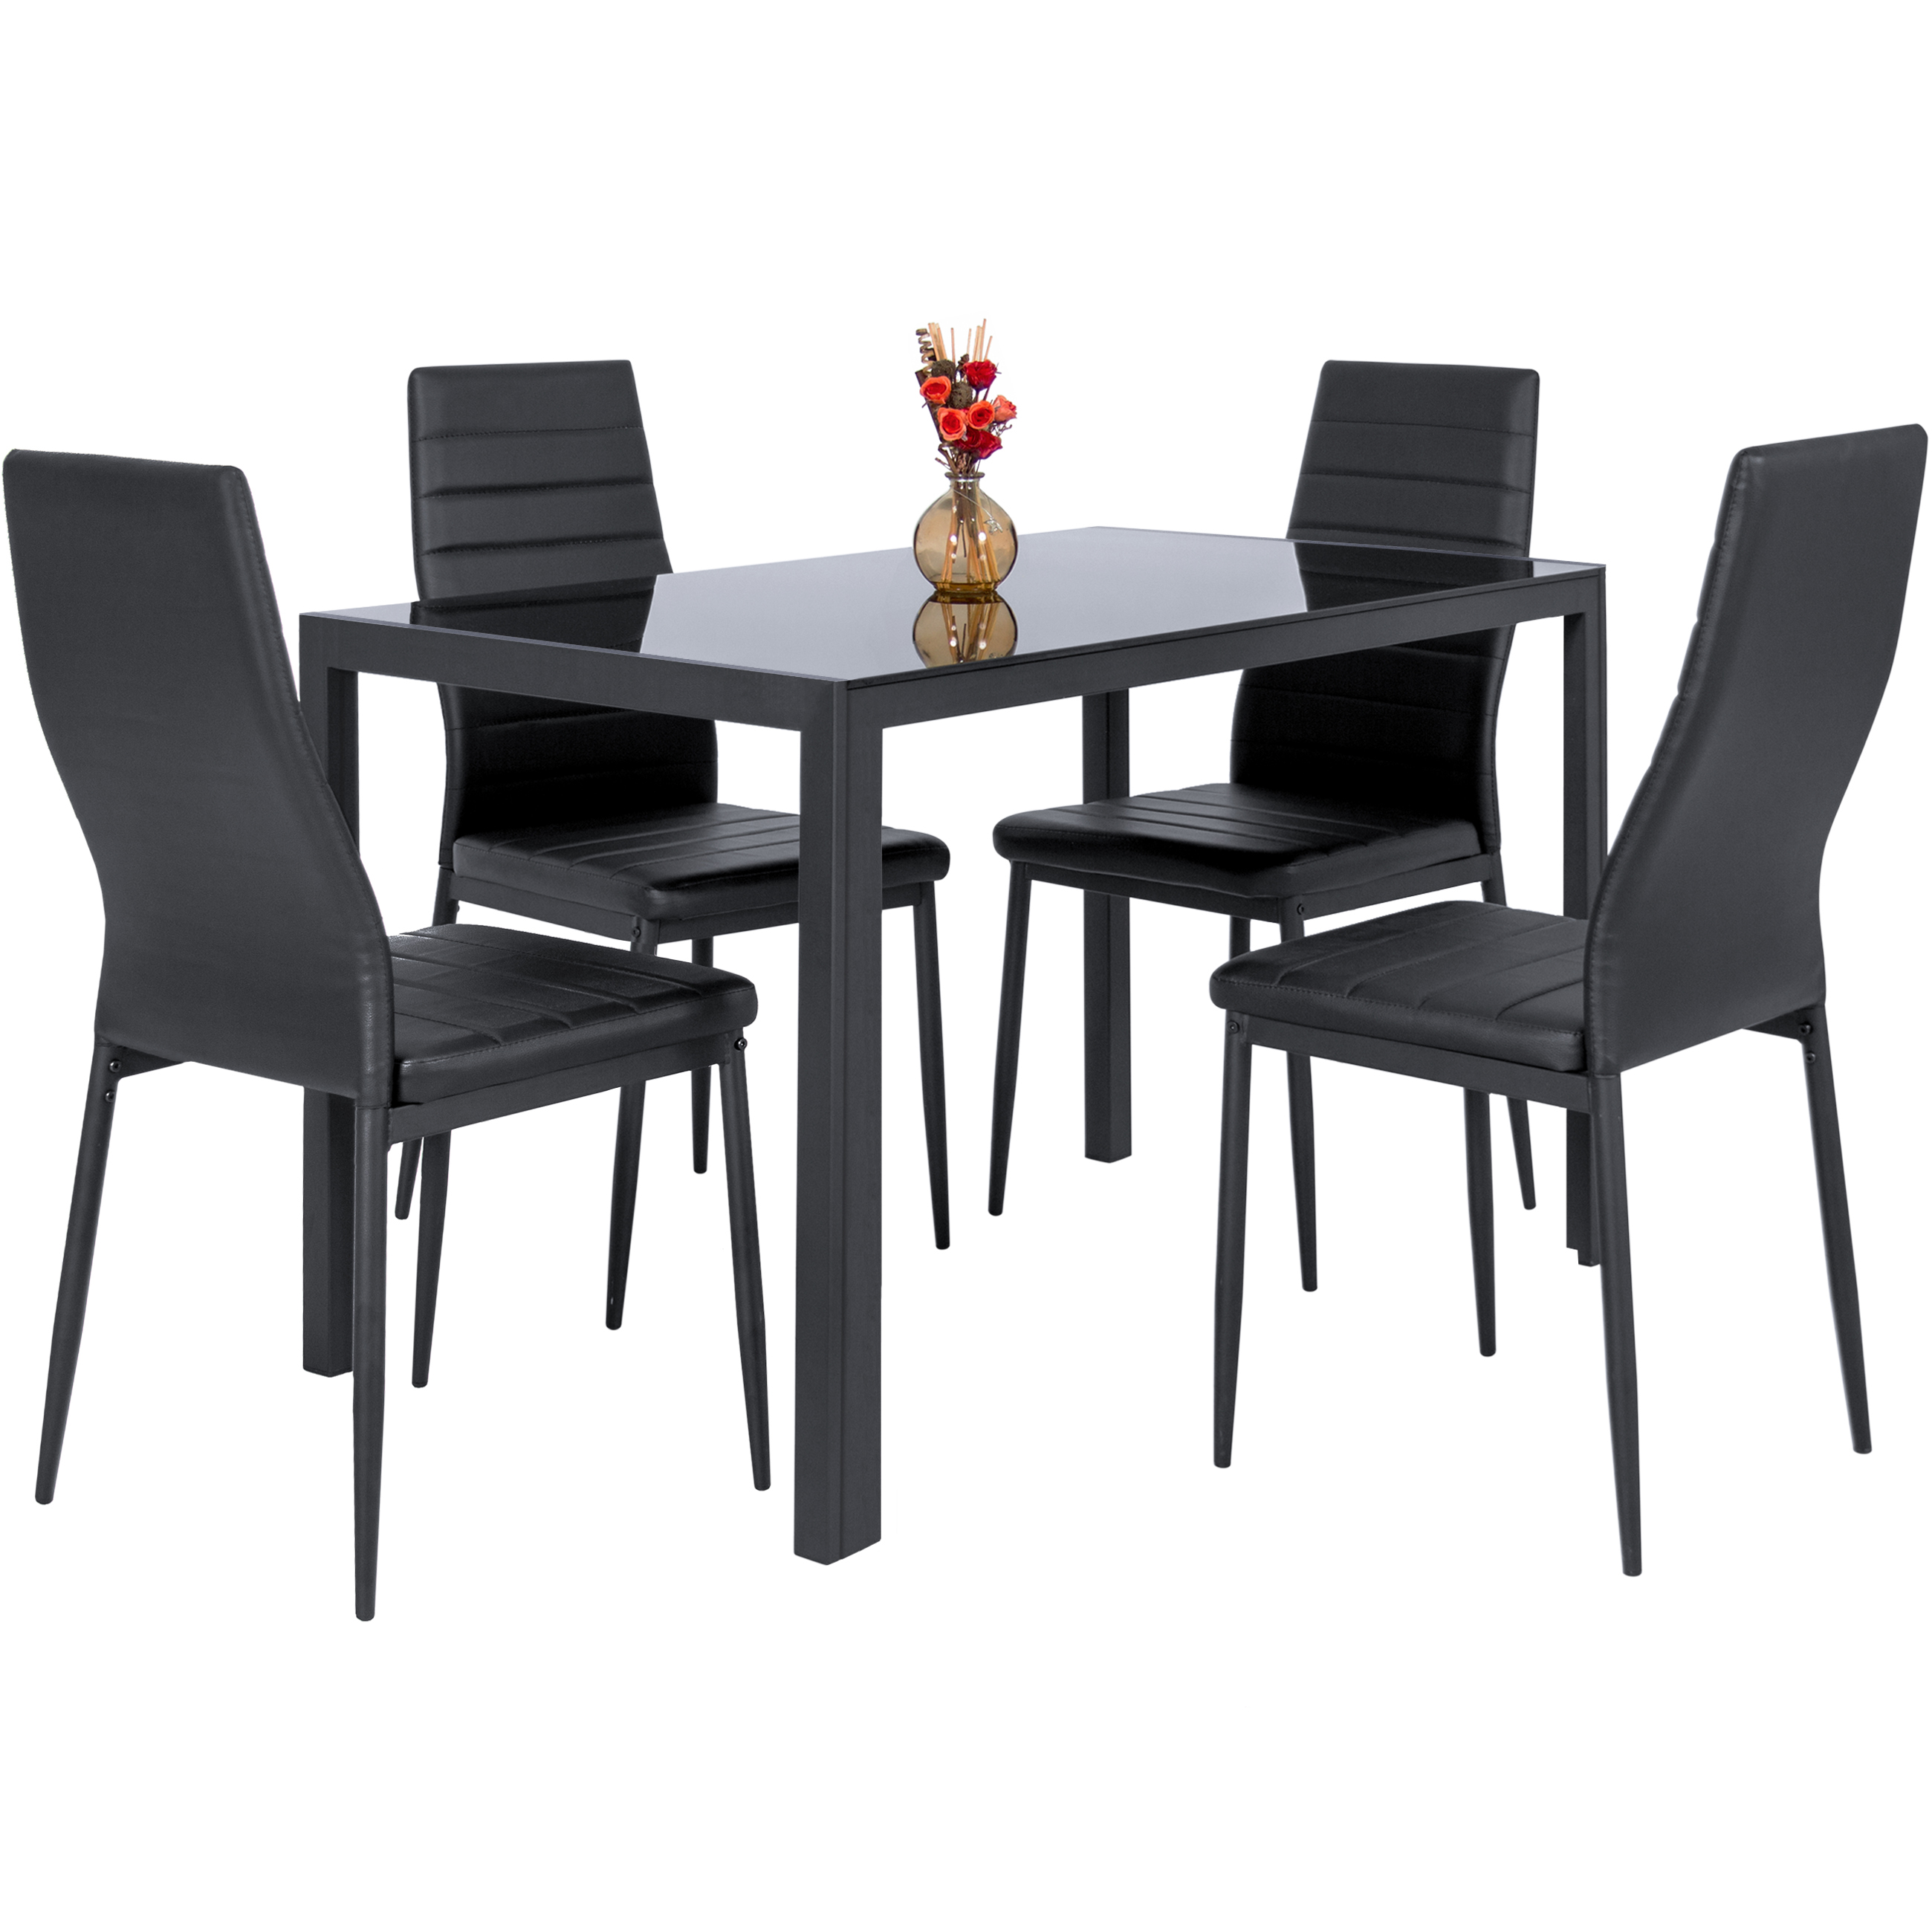 best choice products 5 piece kitchen dining table set w  glass top and 4 leather best choice products 5 piece kitchen dining table set w  glass top      rh   walmart com